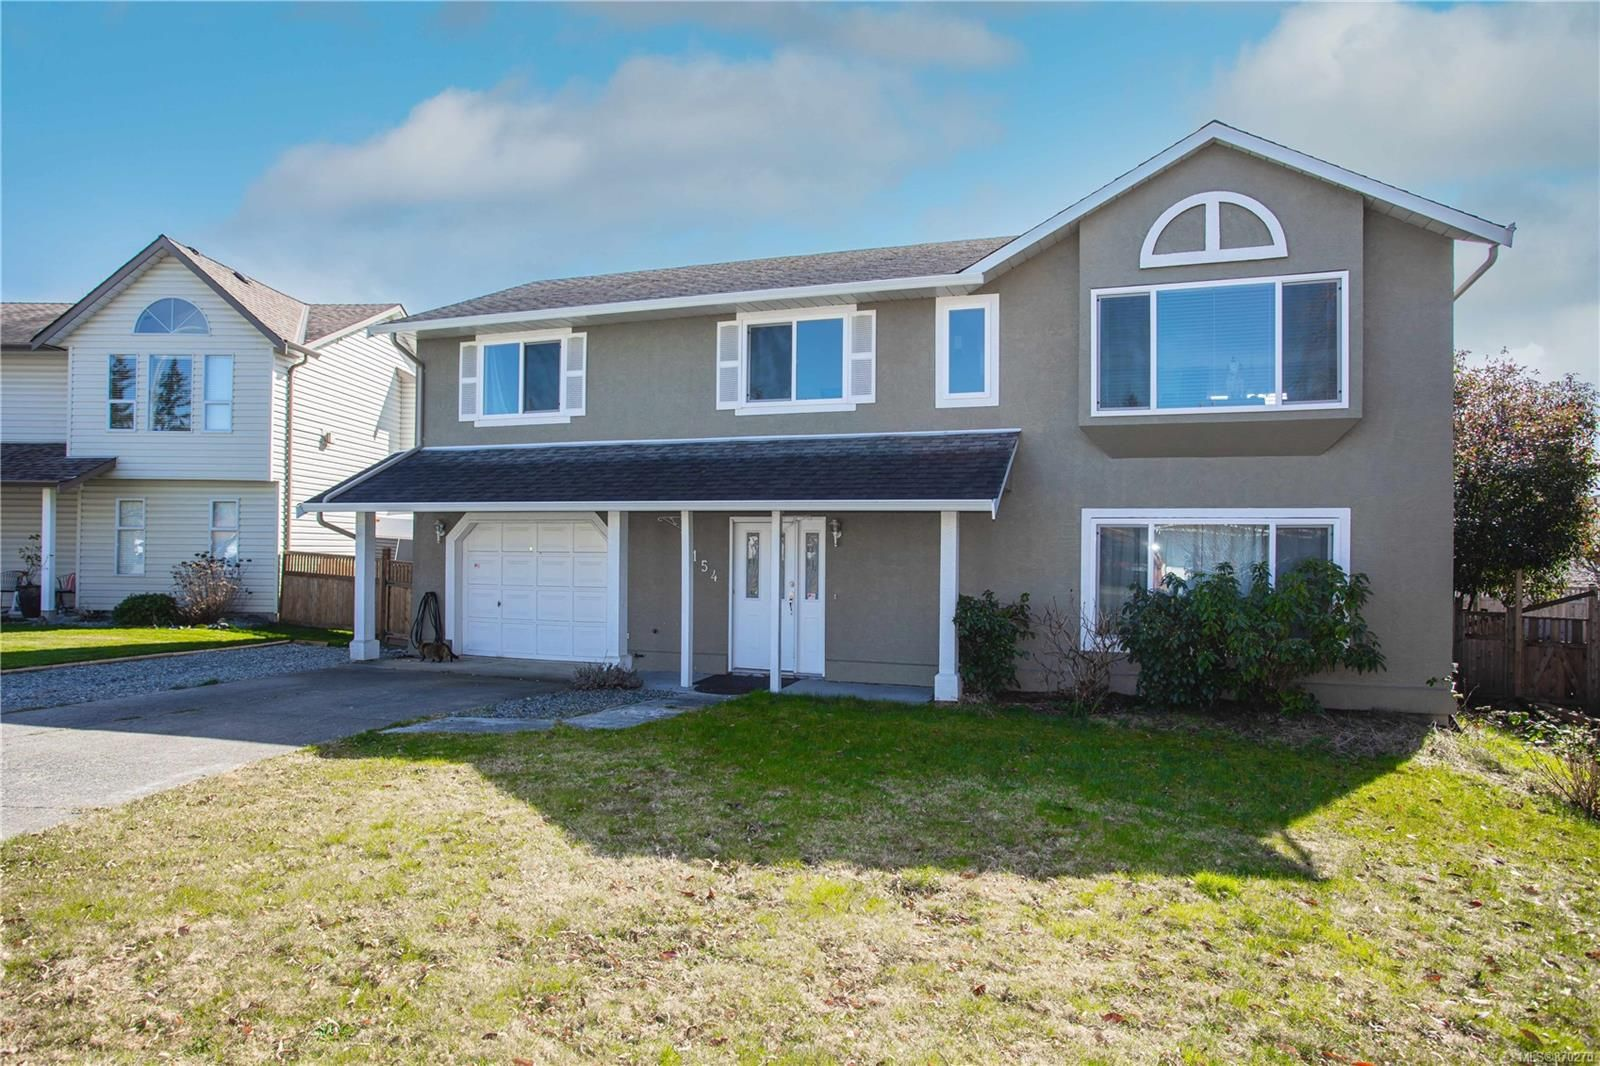 Main Photo: 5154 Kaitlyns Way in : Na Pleasant Valley House for sale (Nanaimo)  : MLS®# 870270